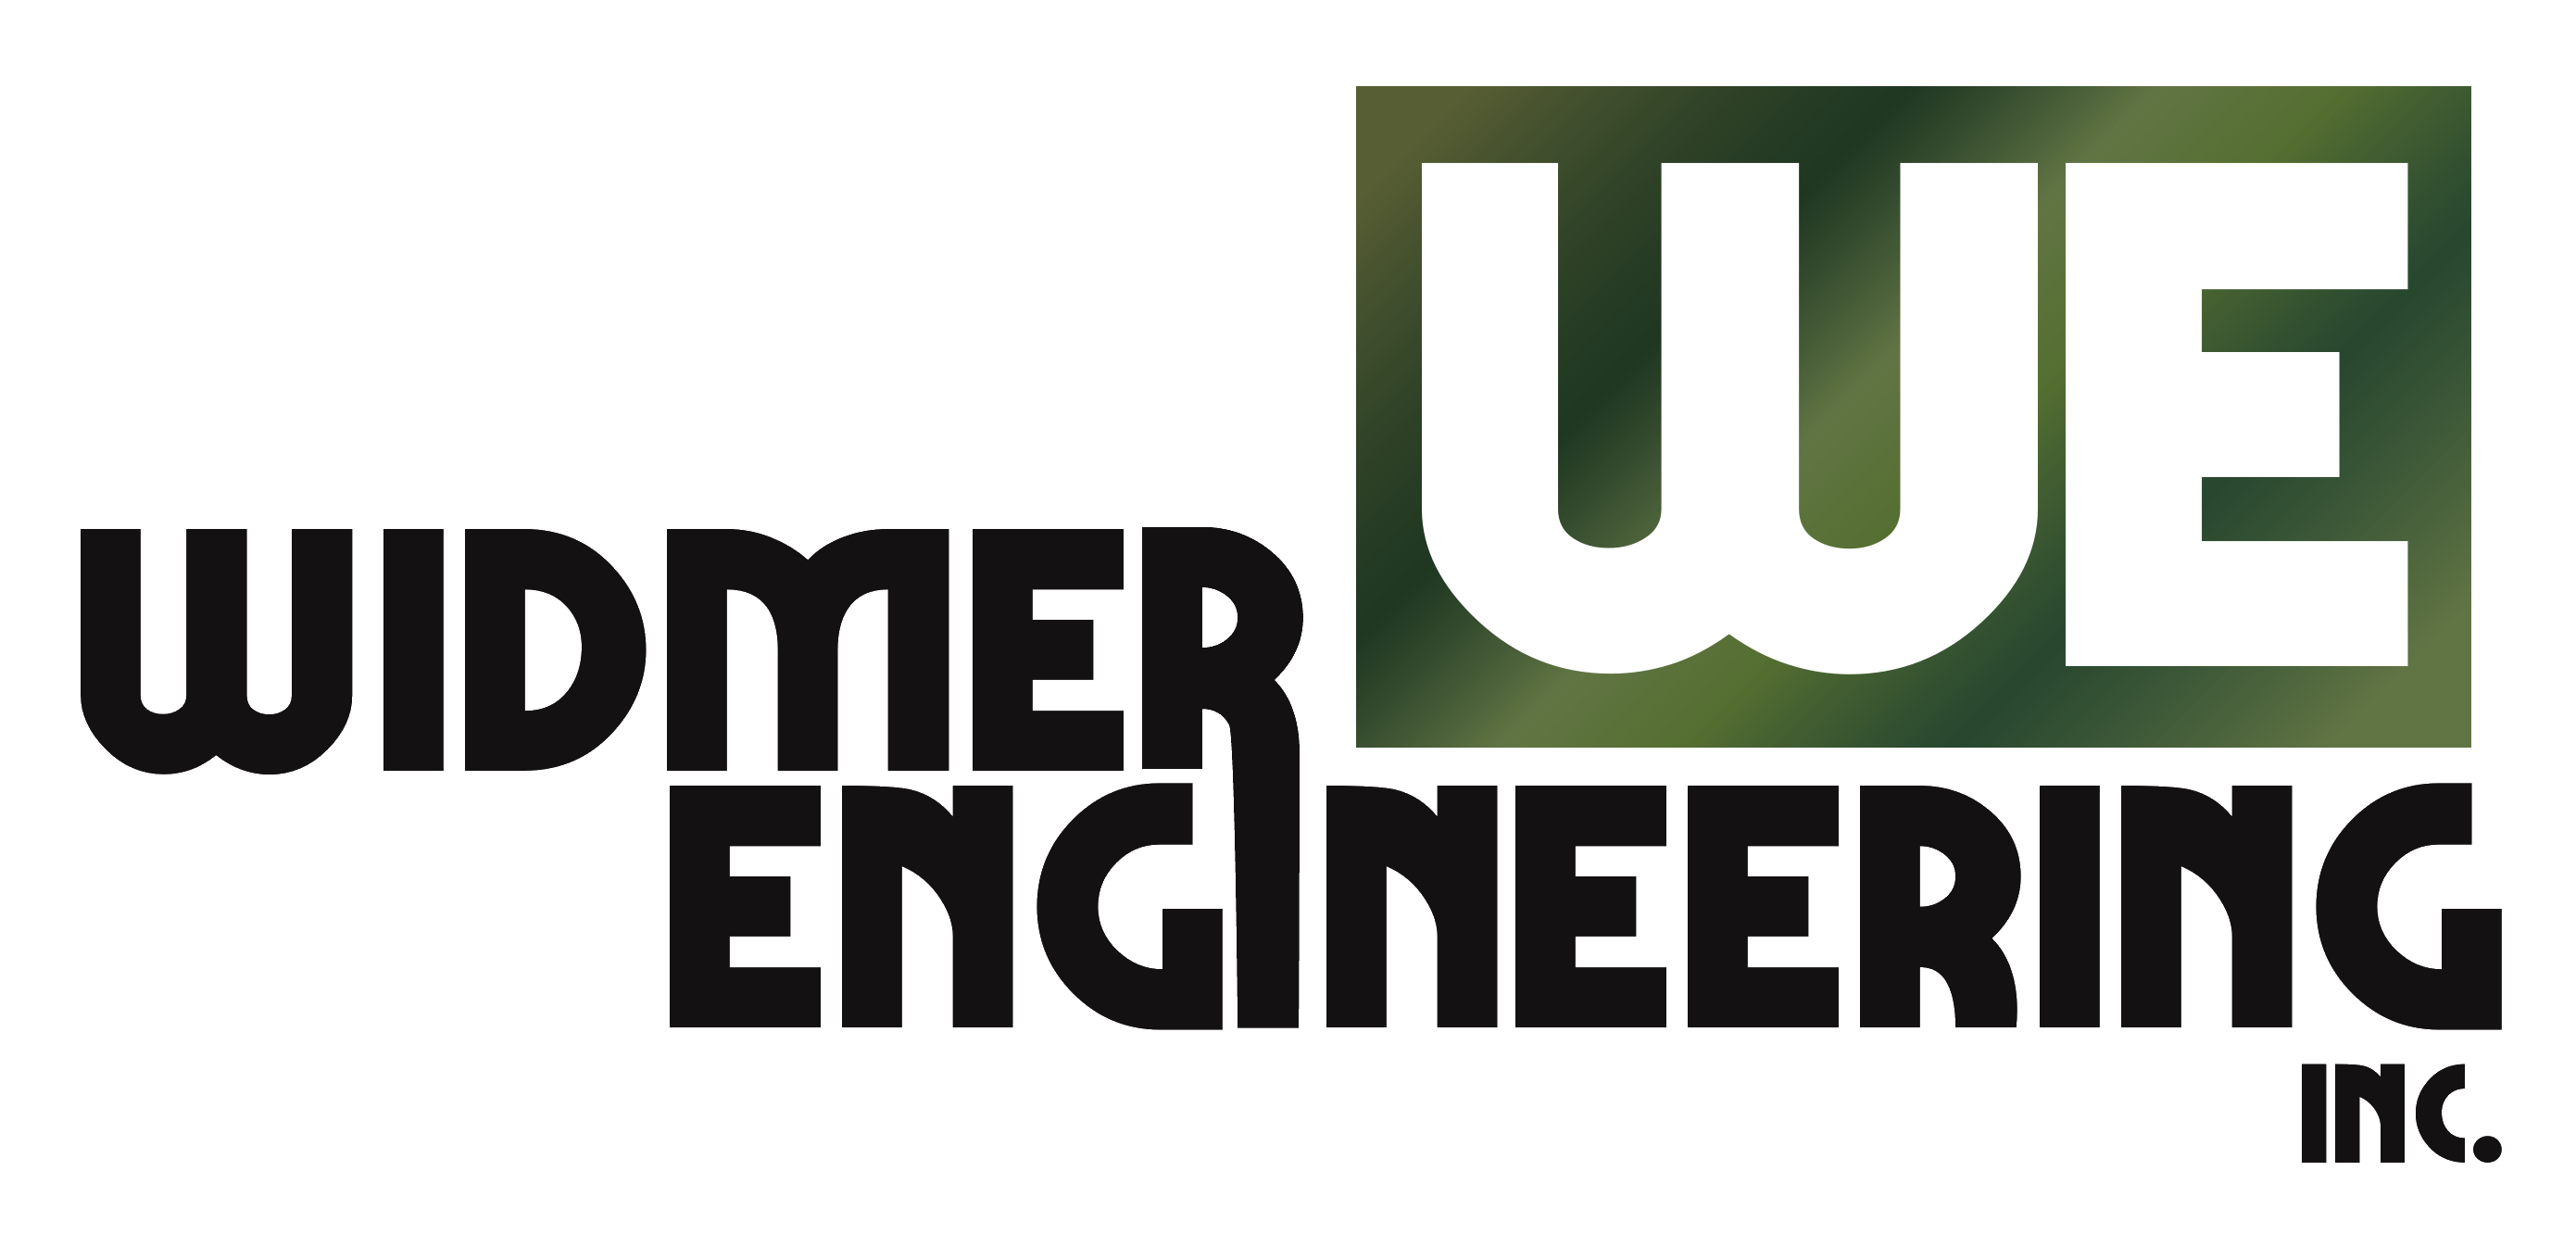 Widmer Engineering Inc